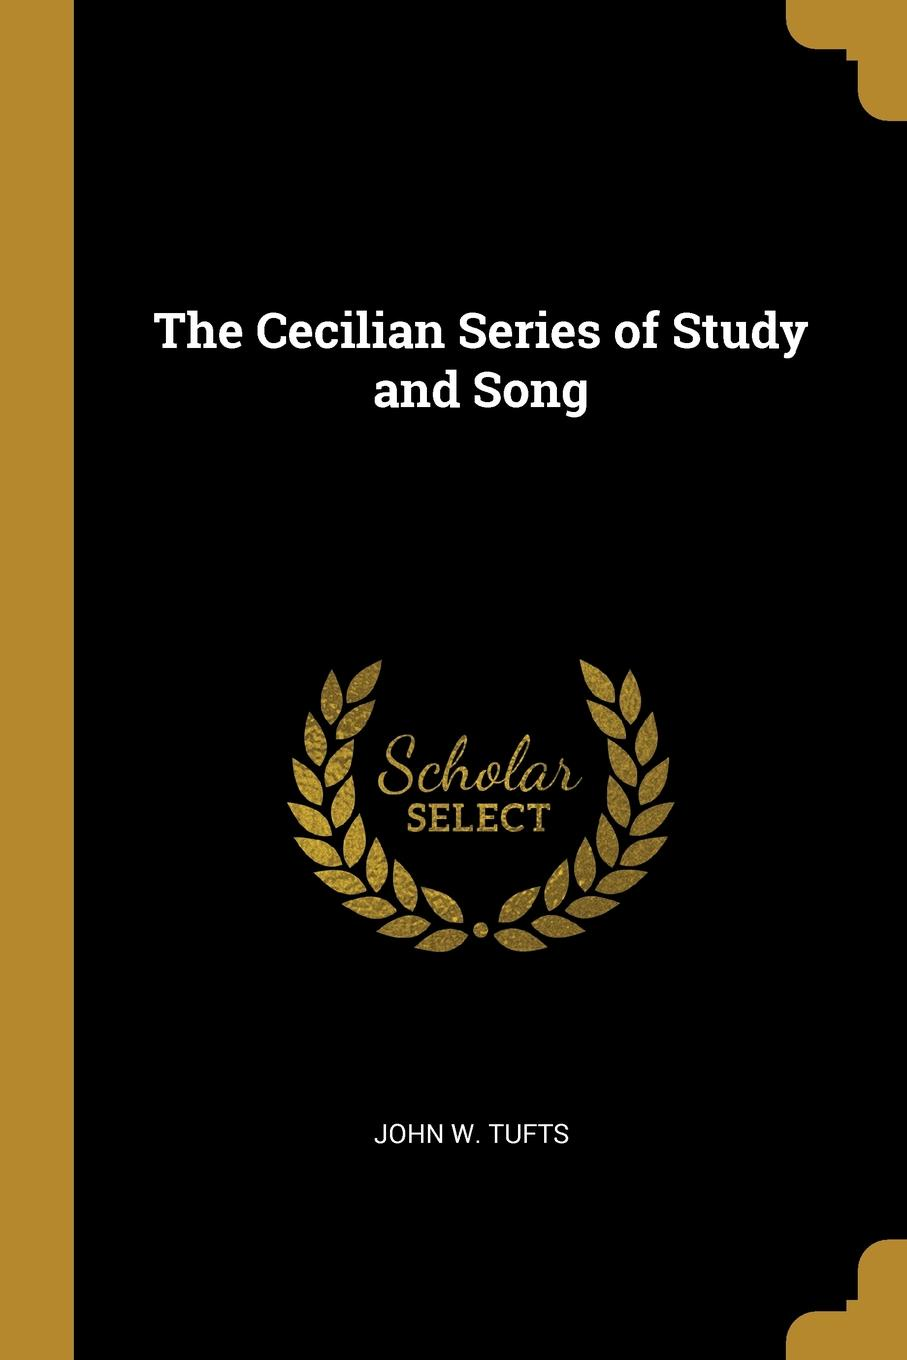 John W. Tufts. The Cecilian Series of Study and Song